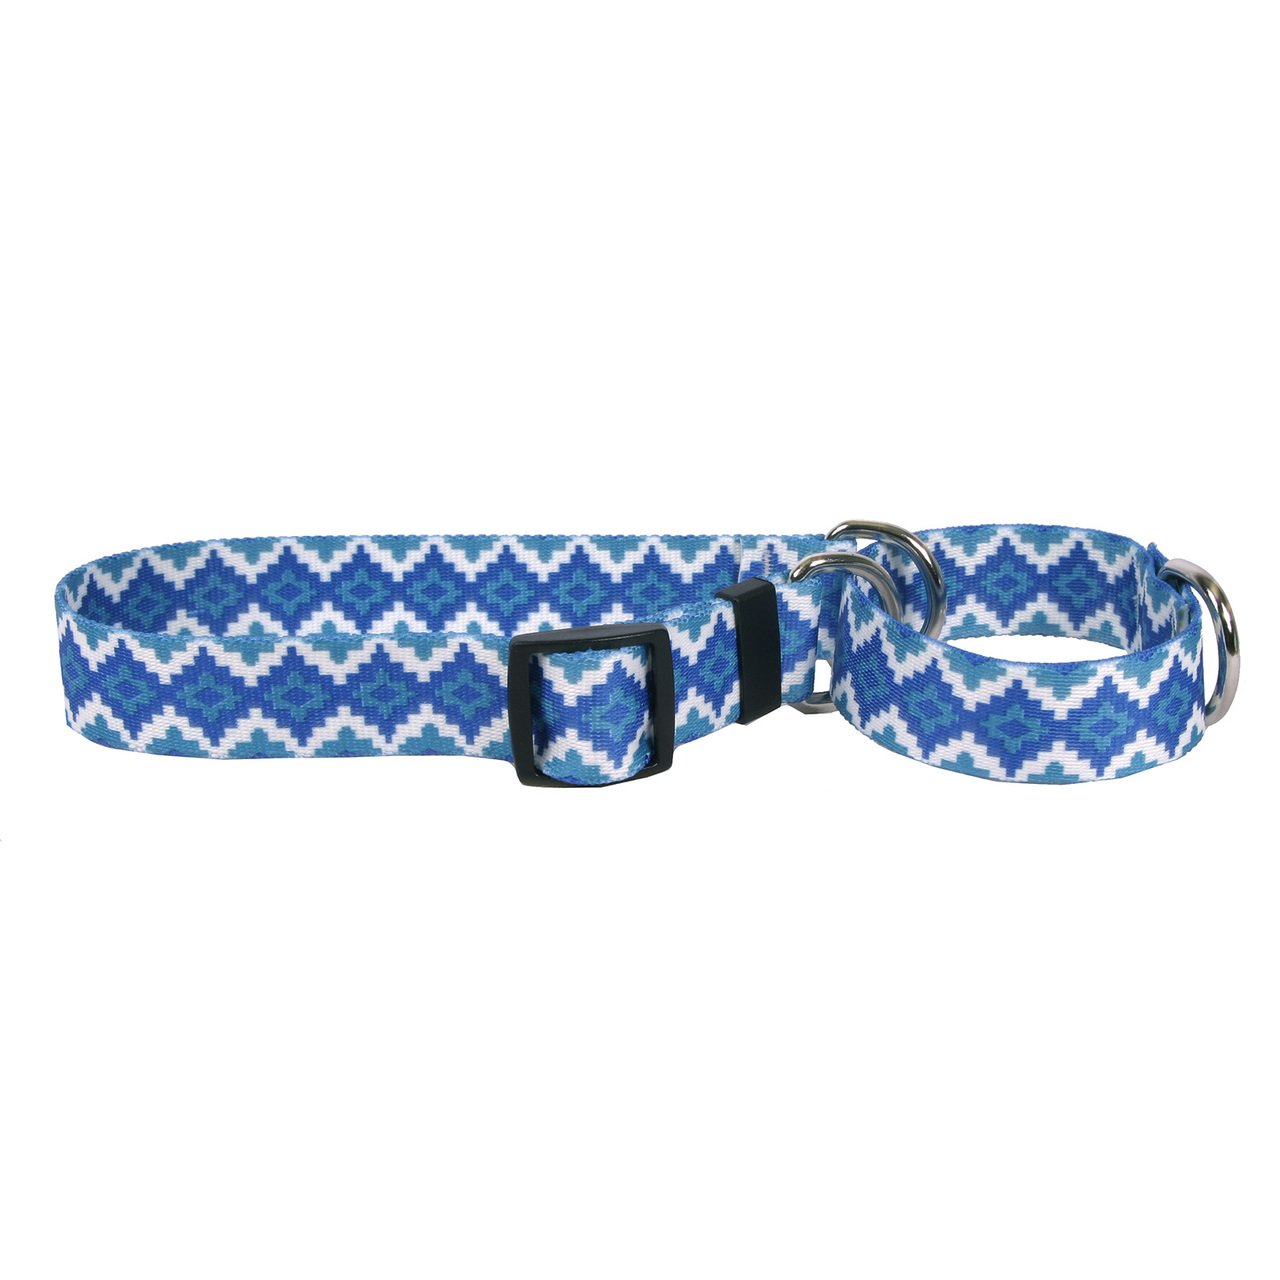 Yellow Dog Design Aztec Storm Martingale Dog Collar 1'' Wide and Fits Neck 14 to 20'', Medium